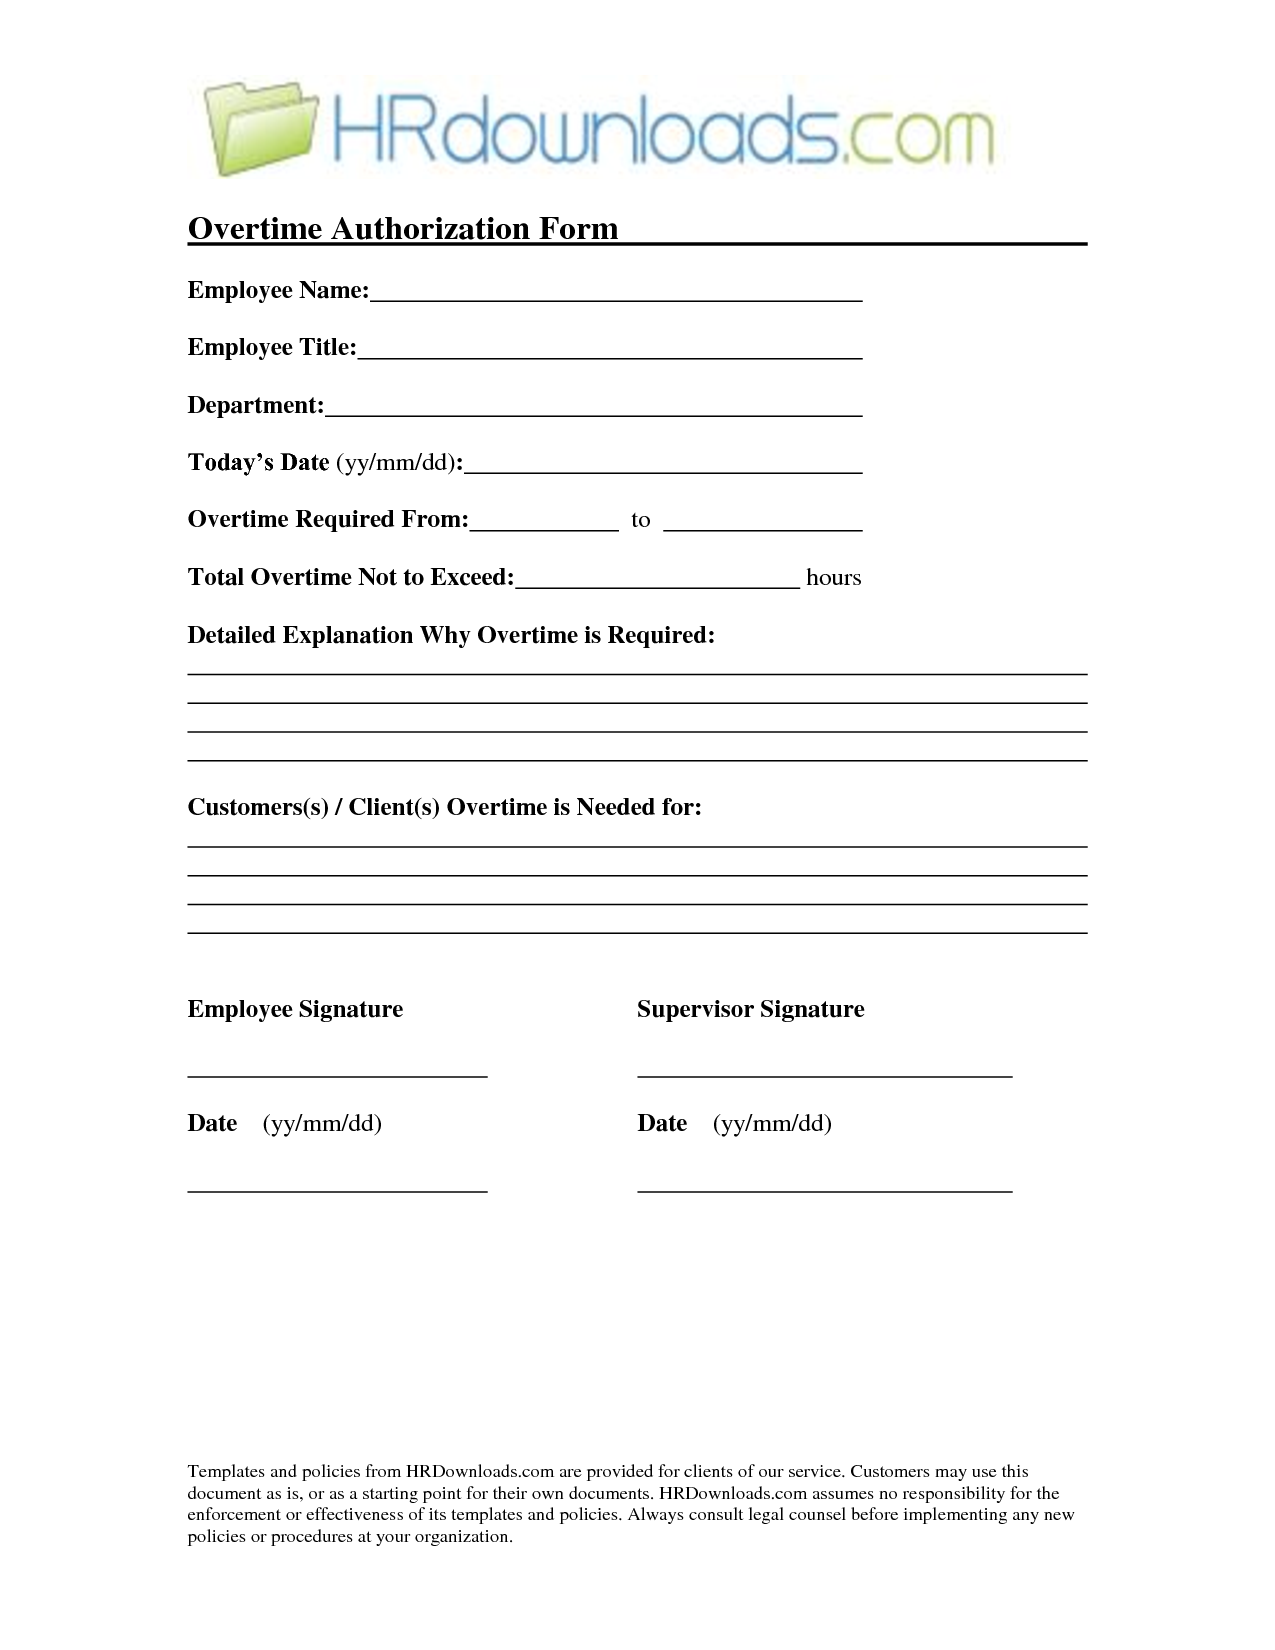 For Overtime Sample Request Form Letter  Home Design Idea